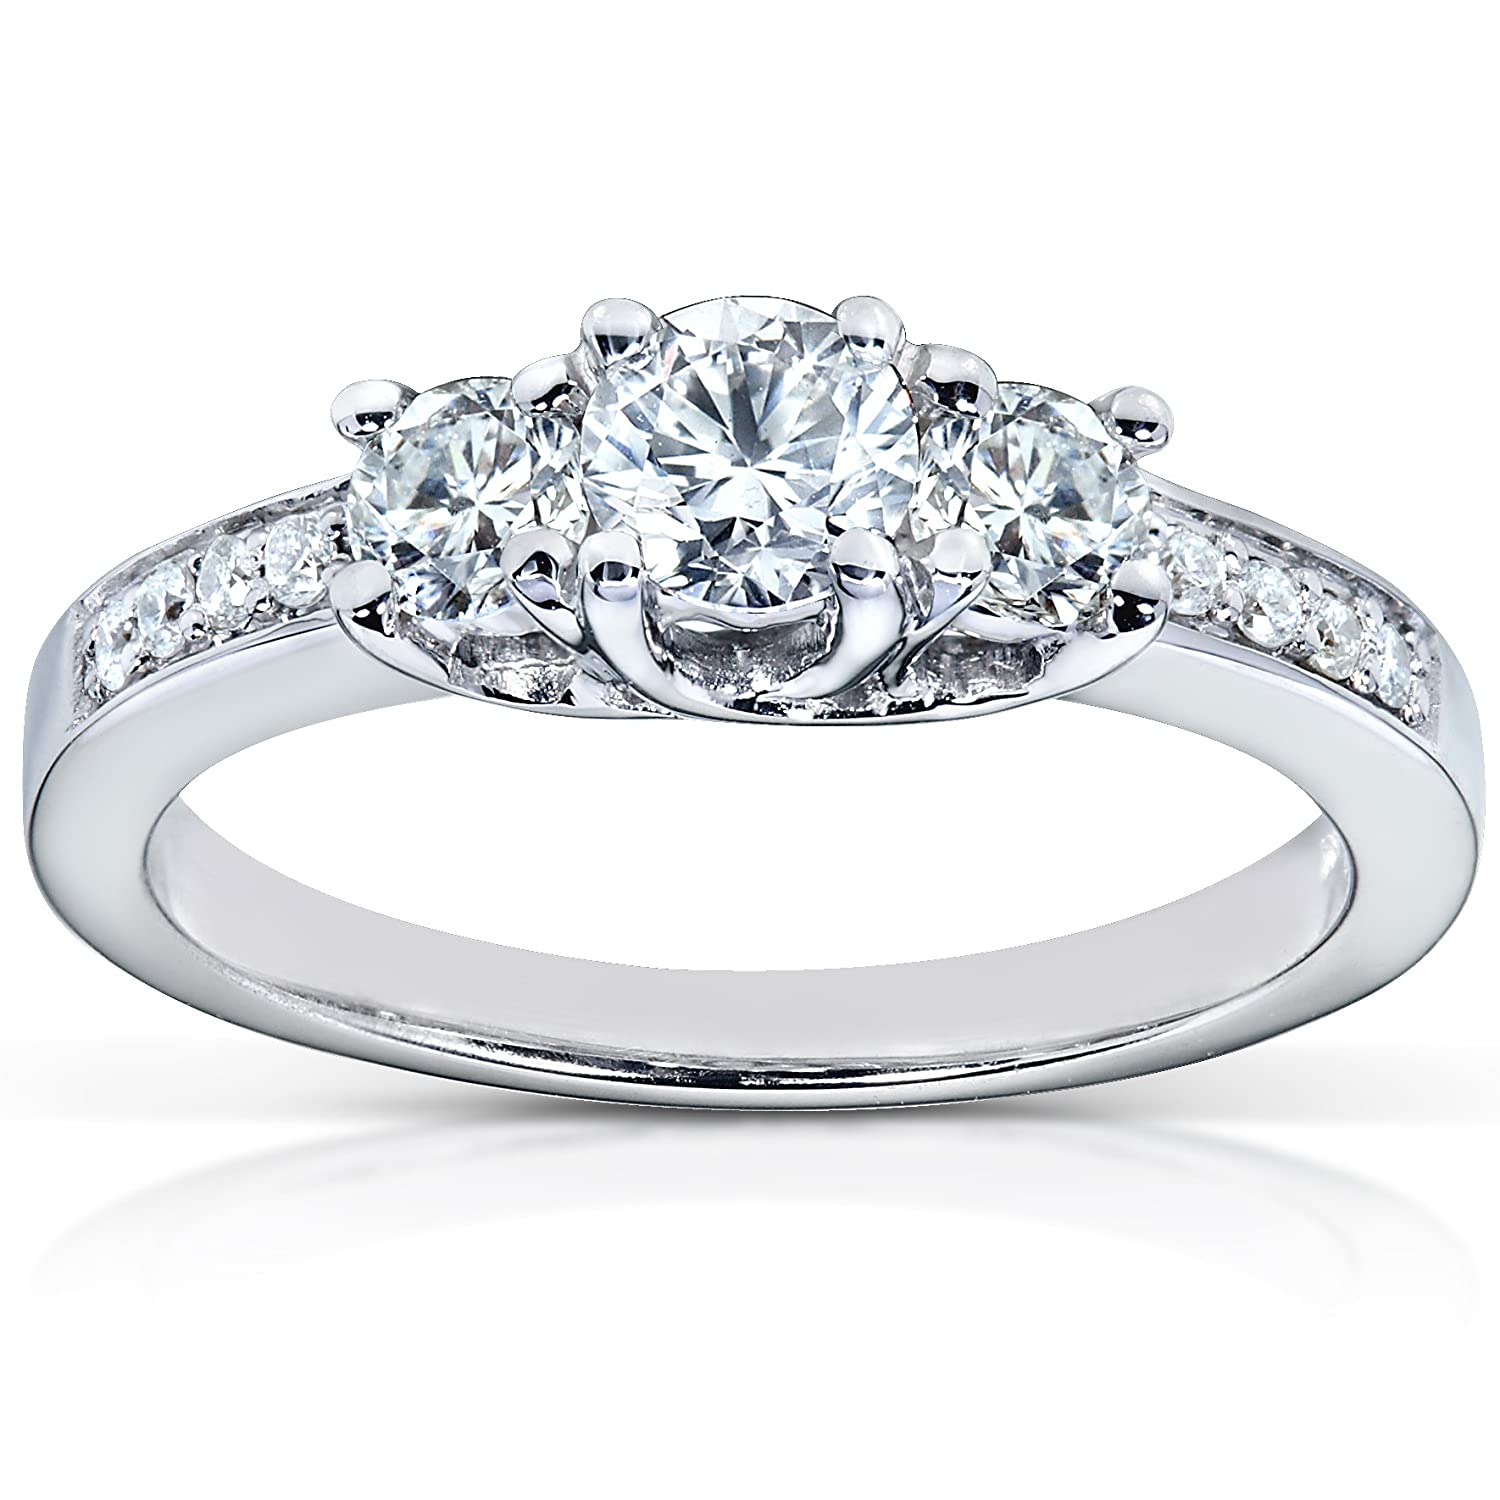 1 2ctw Three Stone Round Brilliant Diamond Engagement Ring in 14K